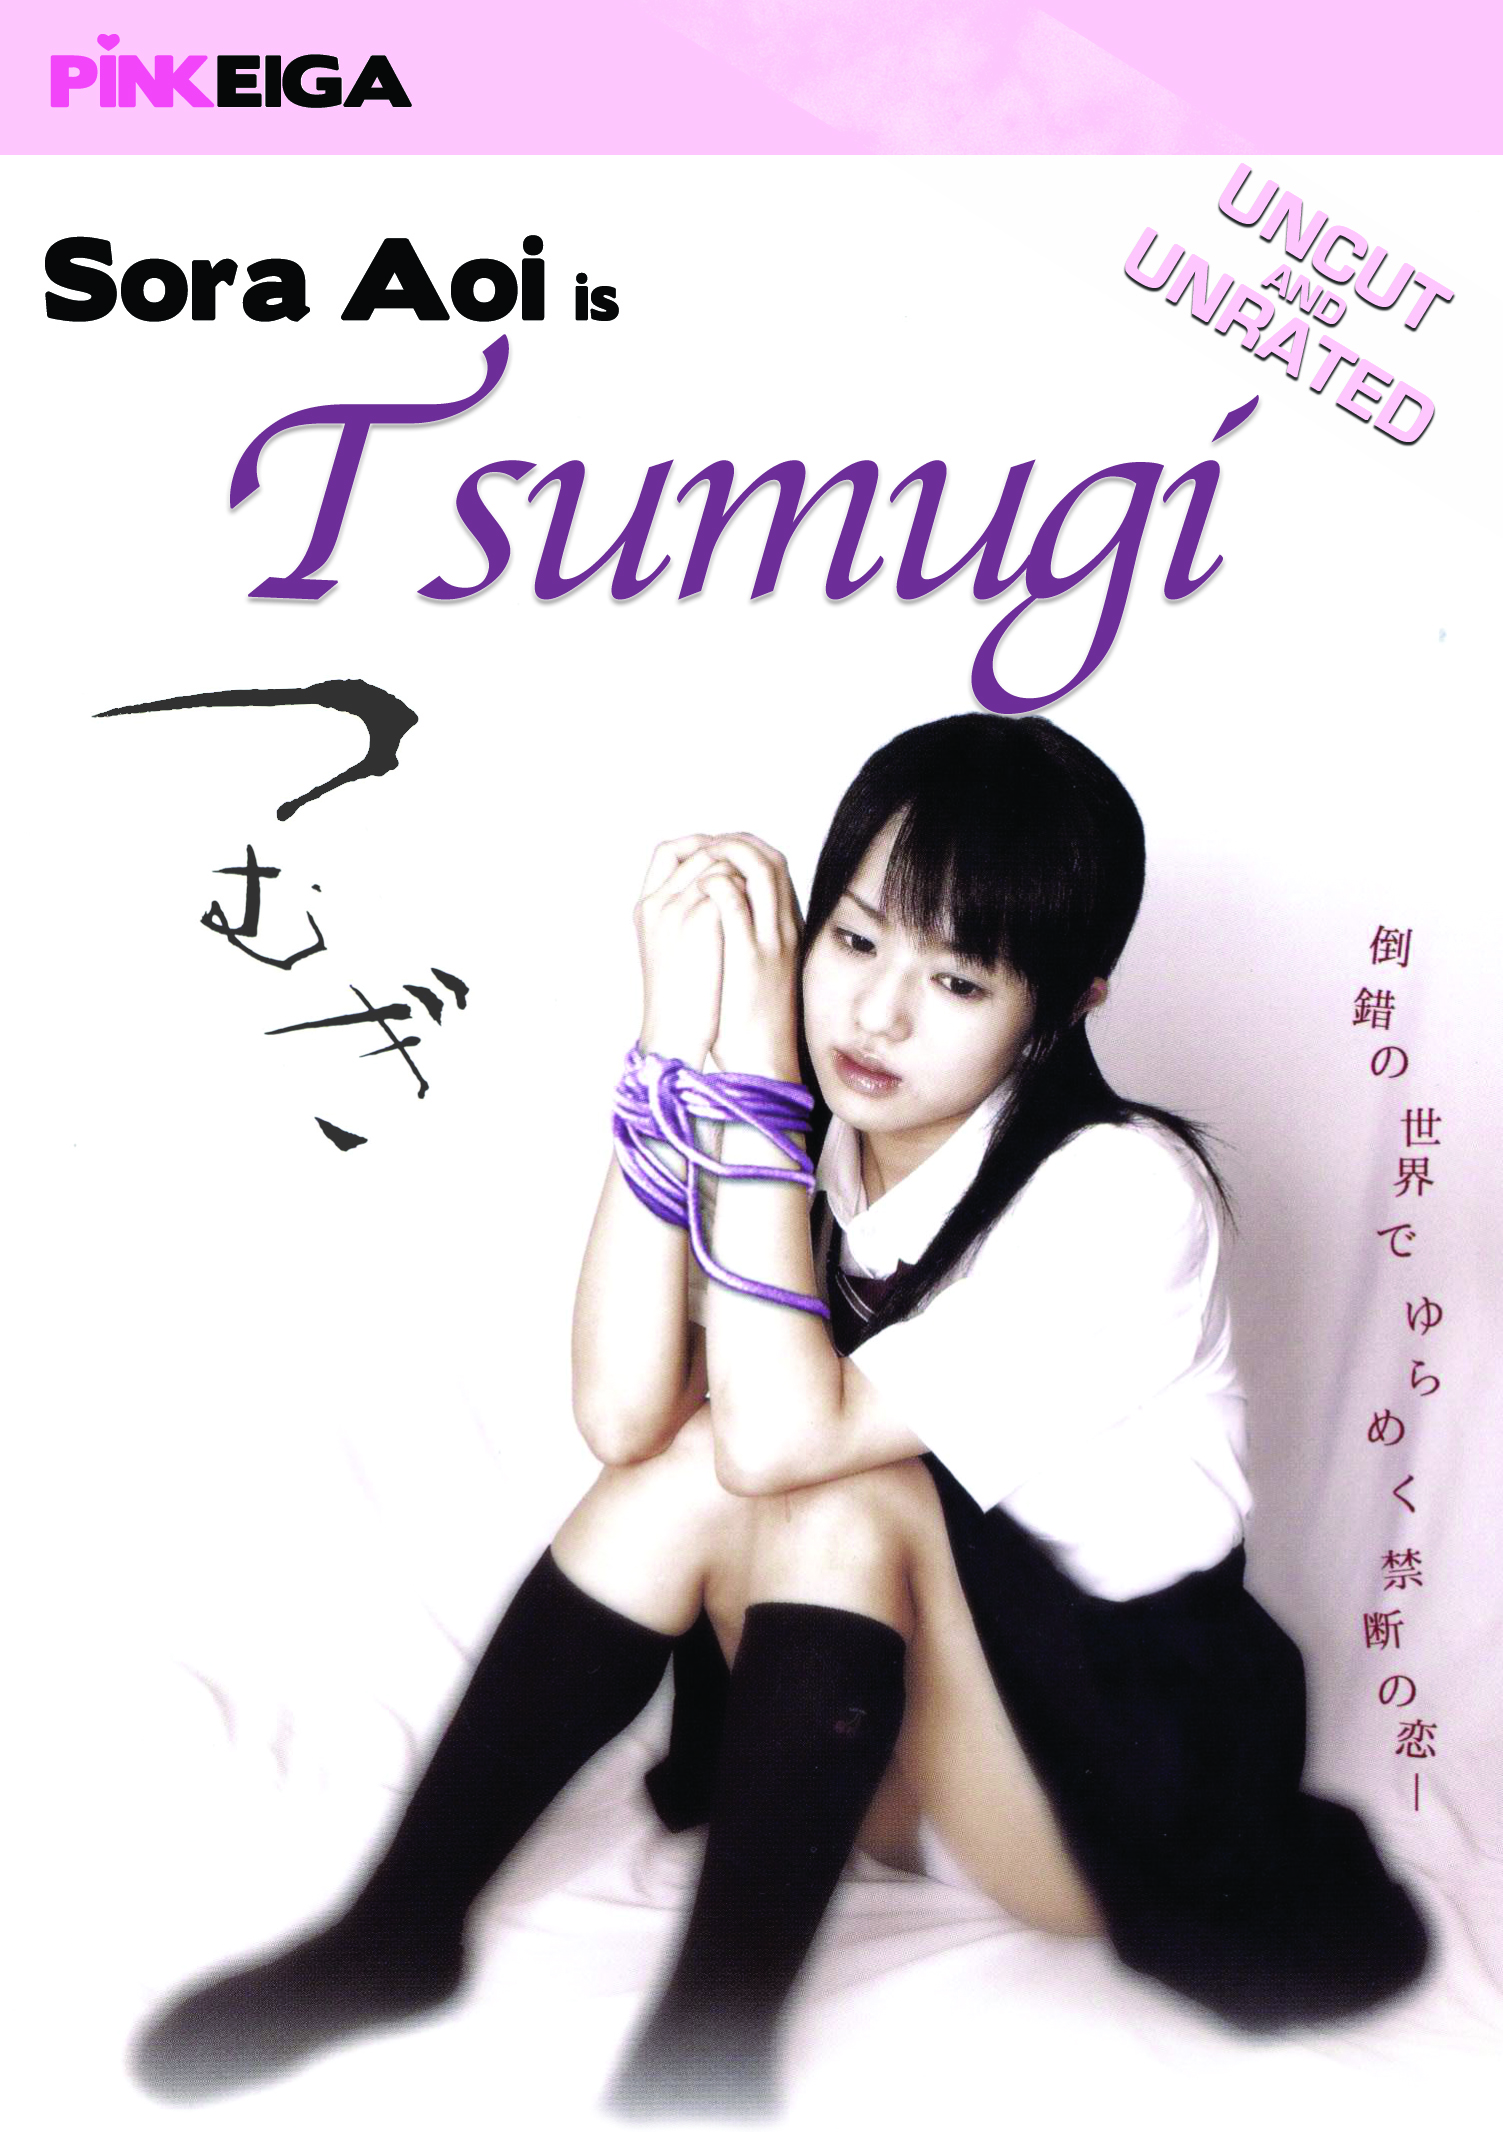 Sora Aoi Is Tsumugi  -SD- DOWNLOAD TO OWN